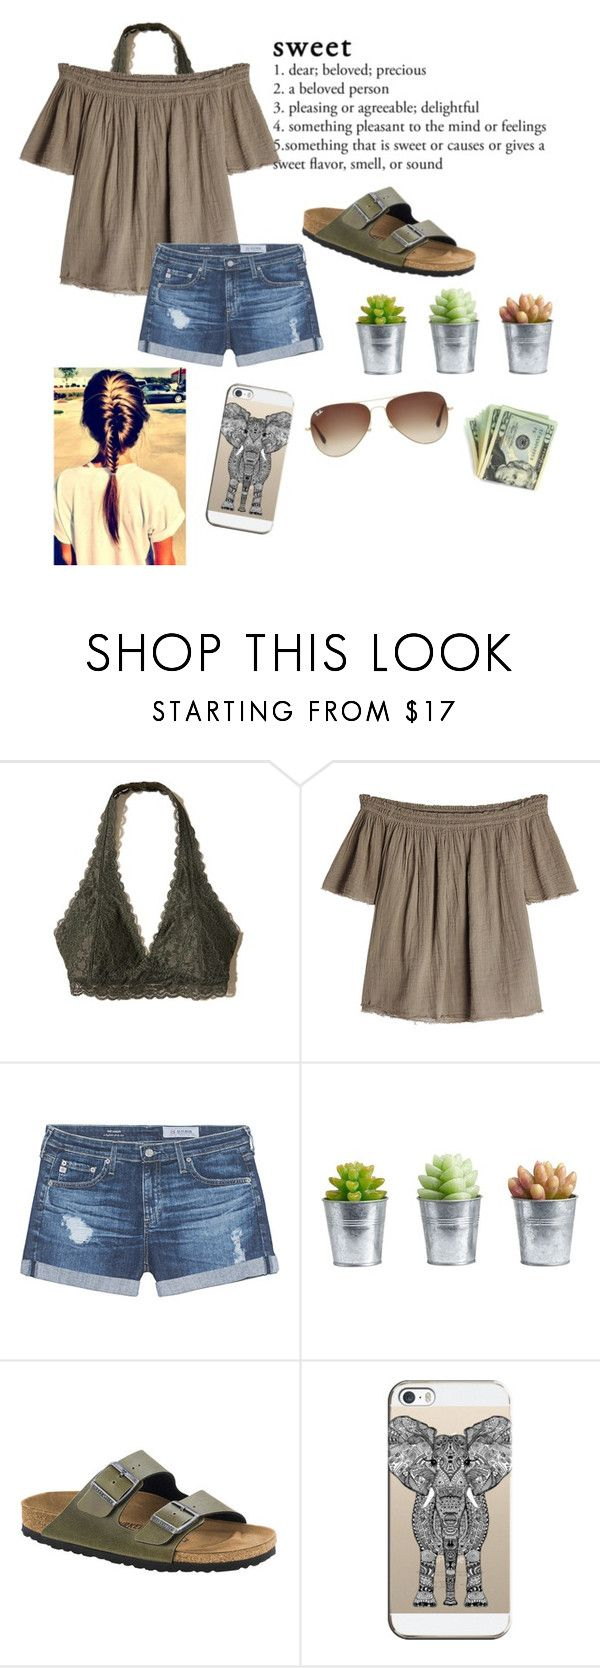 """""""Contest entry!!"""" by emily-wollan ❤ liked on Polyvore featuring Hollister Co., Velvet, AG Adriano Goldschmied, Pottery Barn, Birkenstock, Casetify and Ray-Ban"""